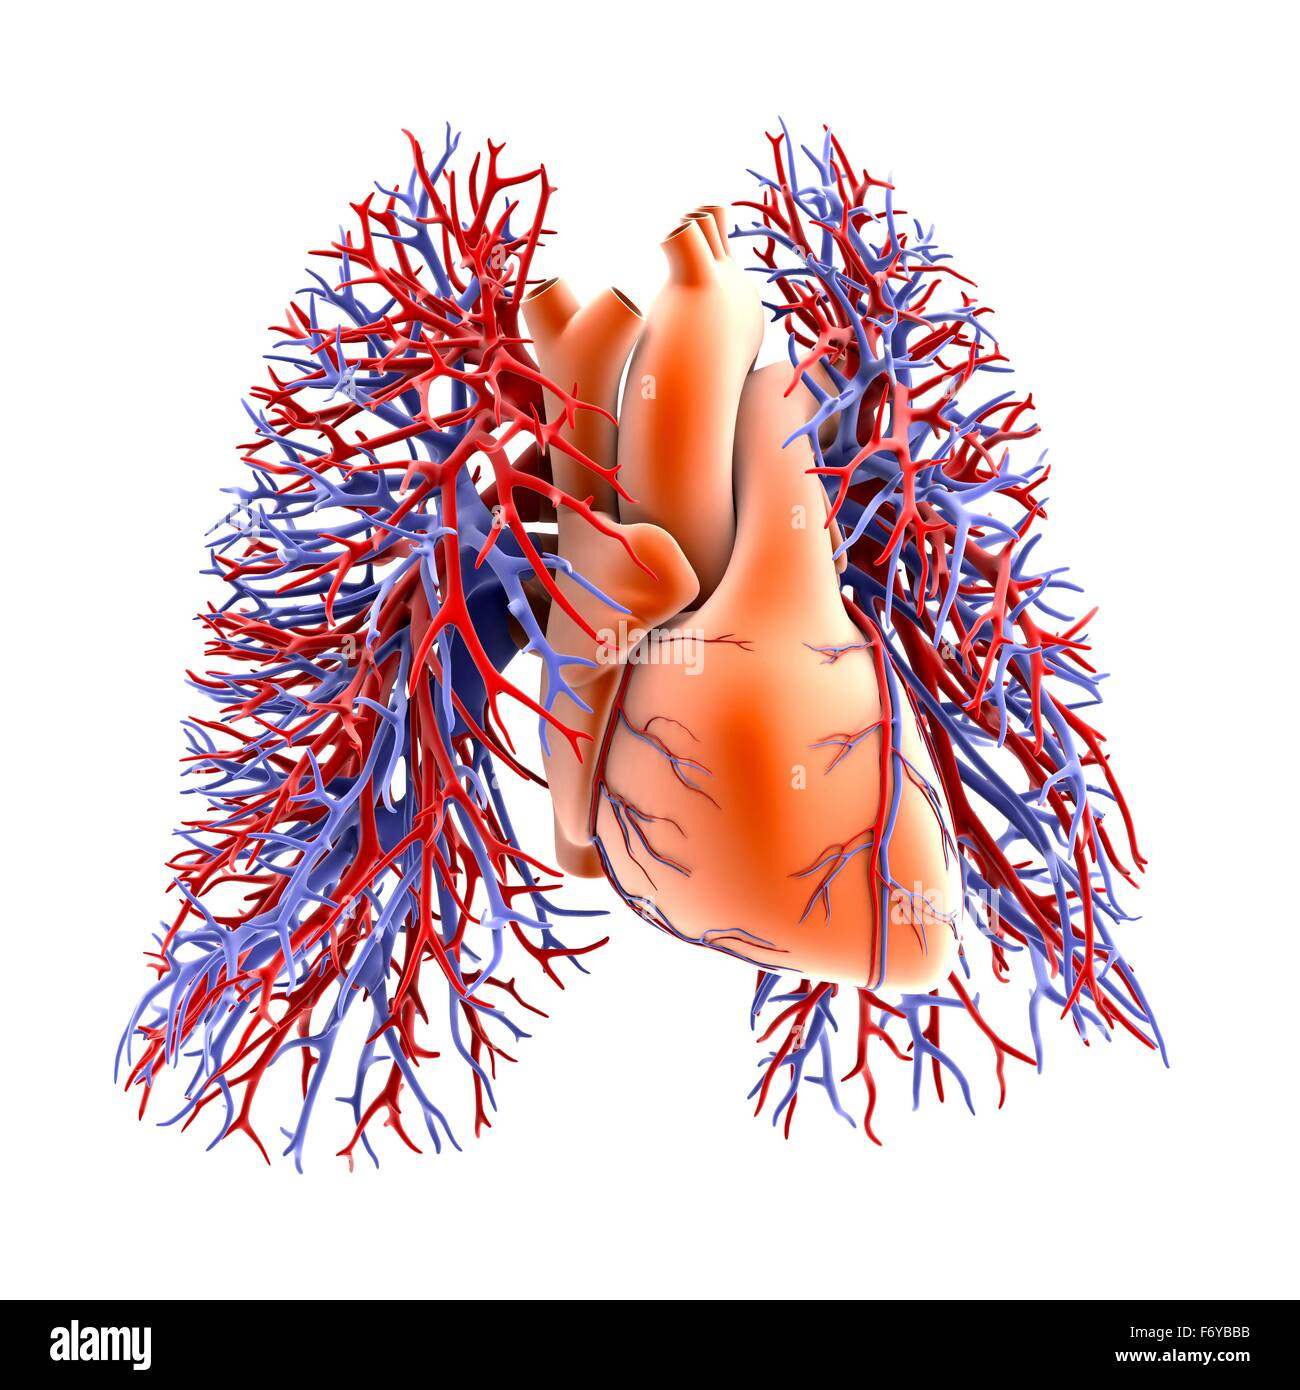 Circulatory system of heart and lungs, computer artwork. The heart ...